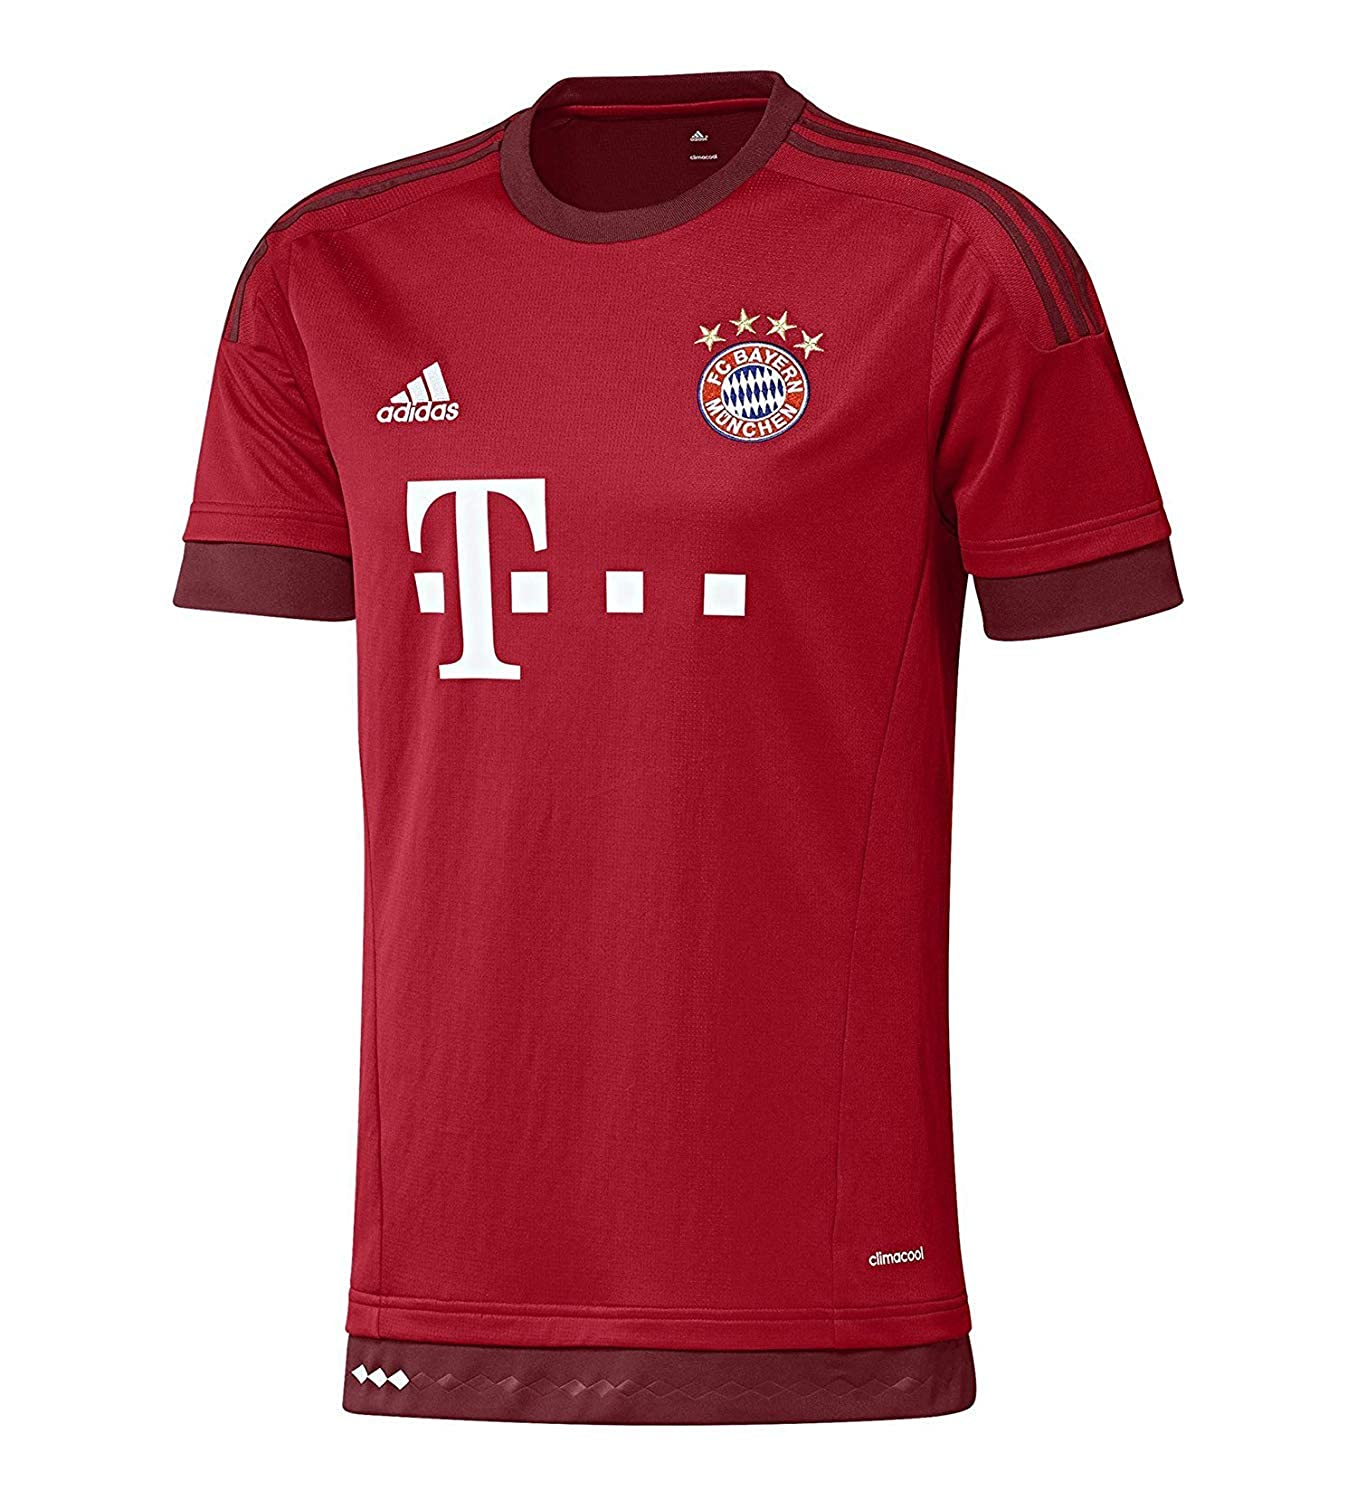 ac771f86864 Amazon.com: adidas Lewandowski #9 Bayern Munich Home Soccer Jersey 2015-16  Youth.: Clothing